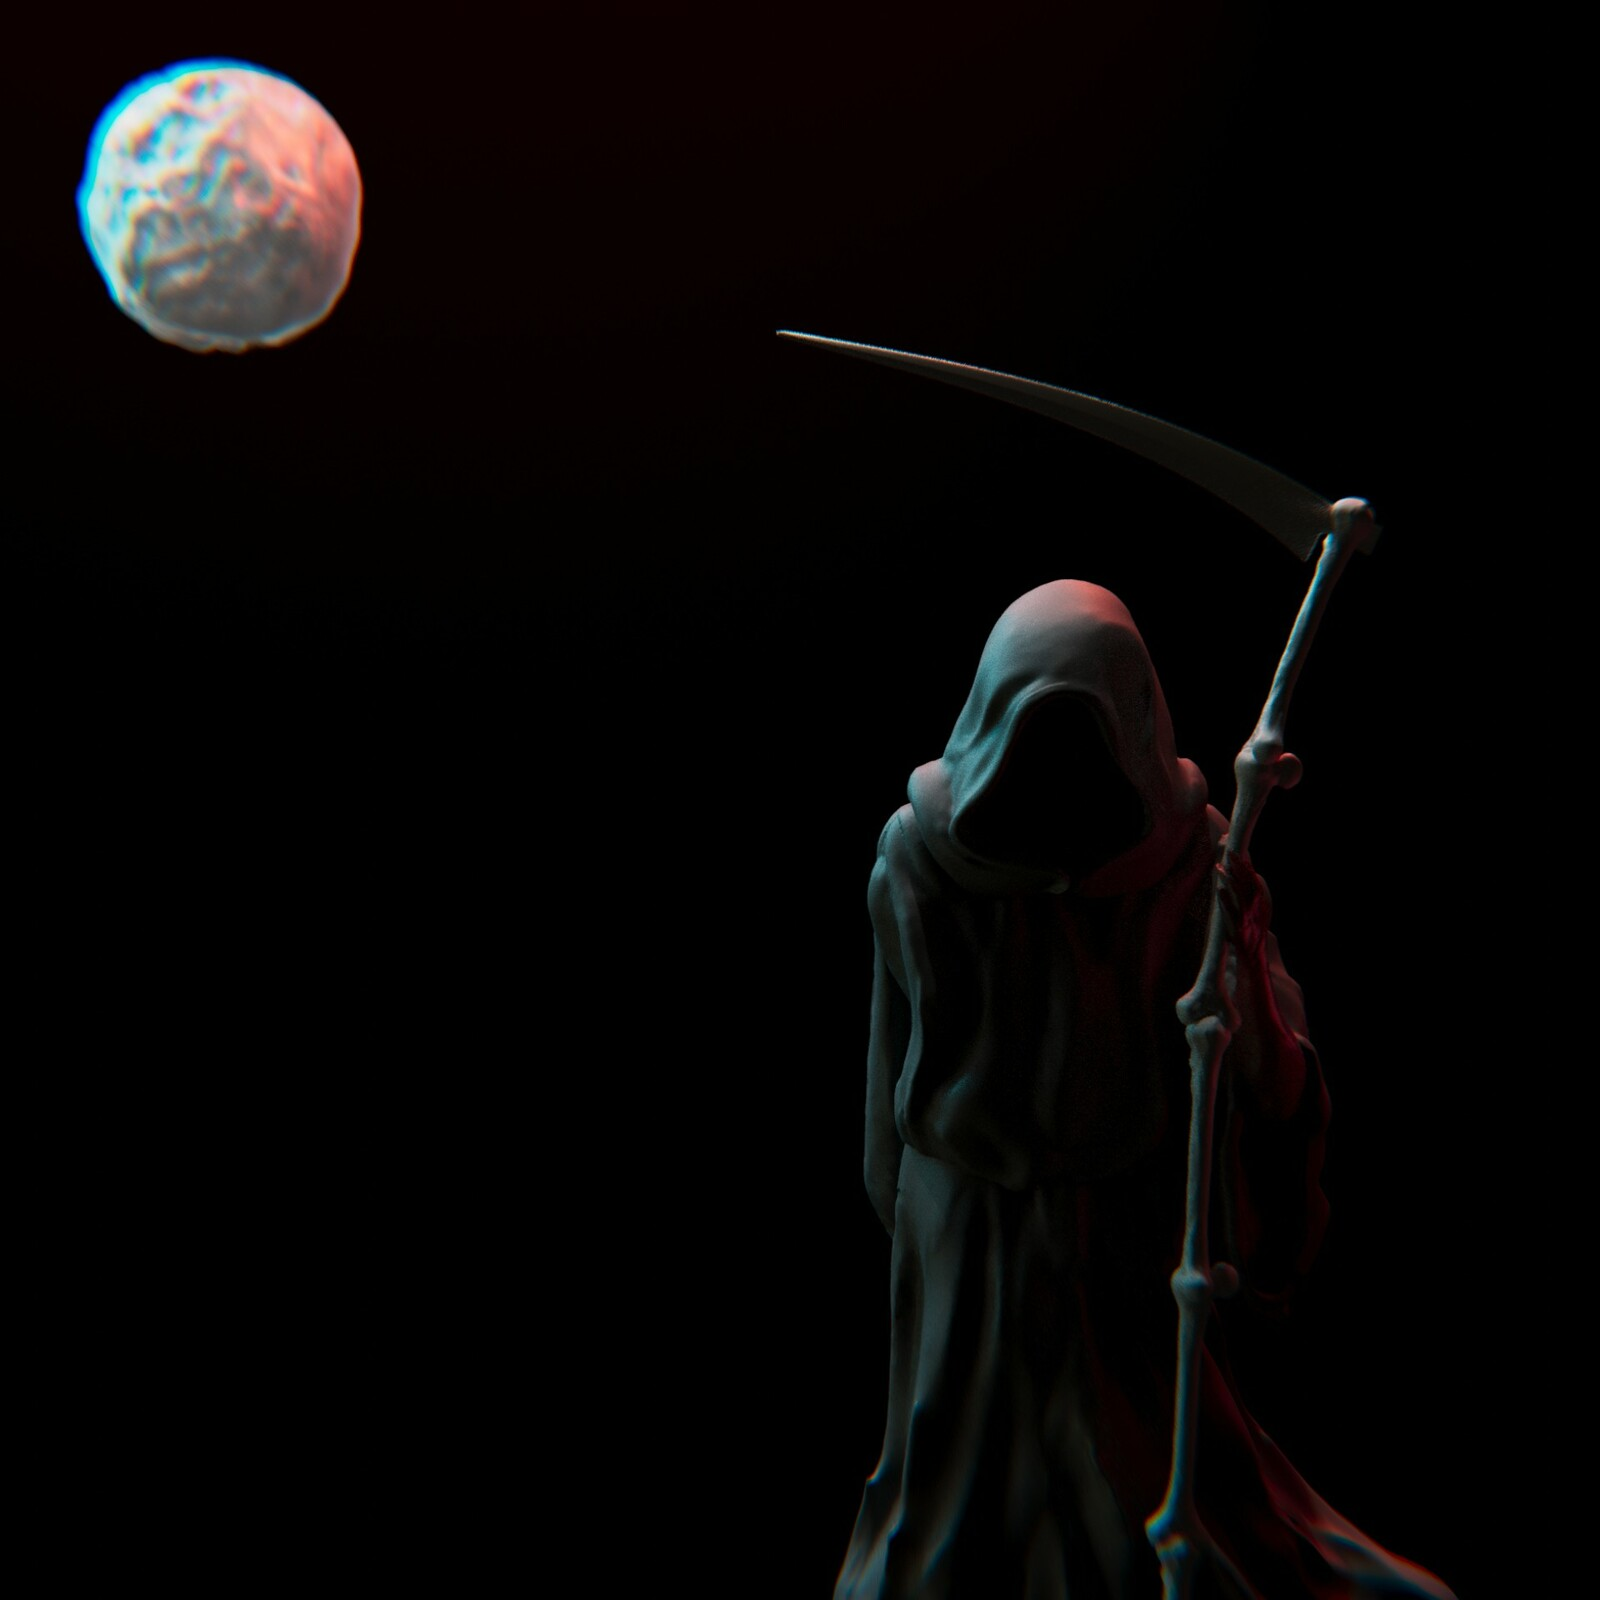 SculptJanuary2020 - Day 06 Darkness